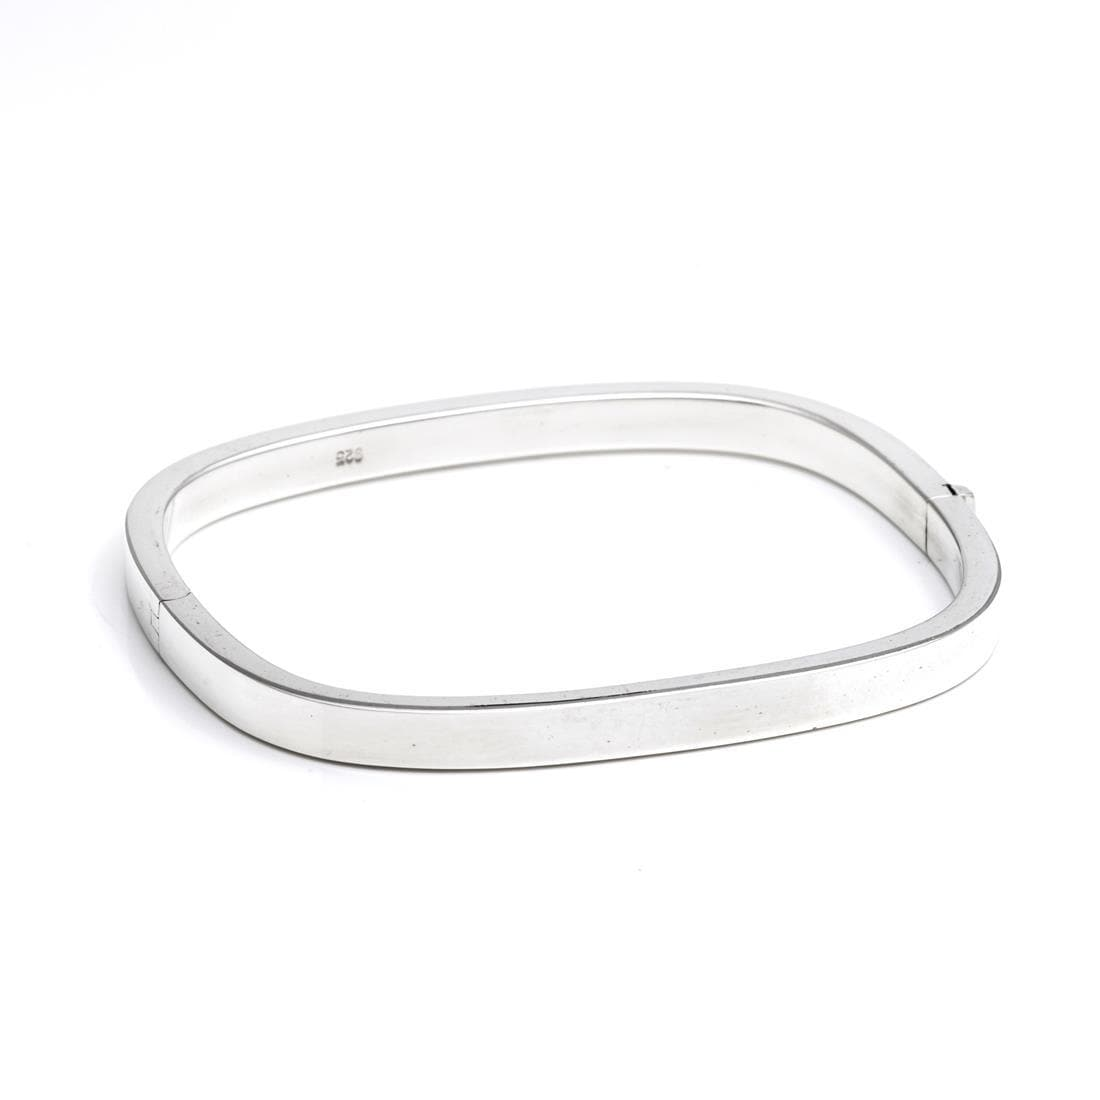 tiffany constrain bracelets sterling square bangle co m bangles id ed fmt in wid bracelet fit t hei silver large jewelry